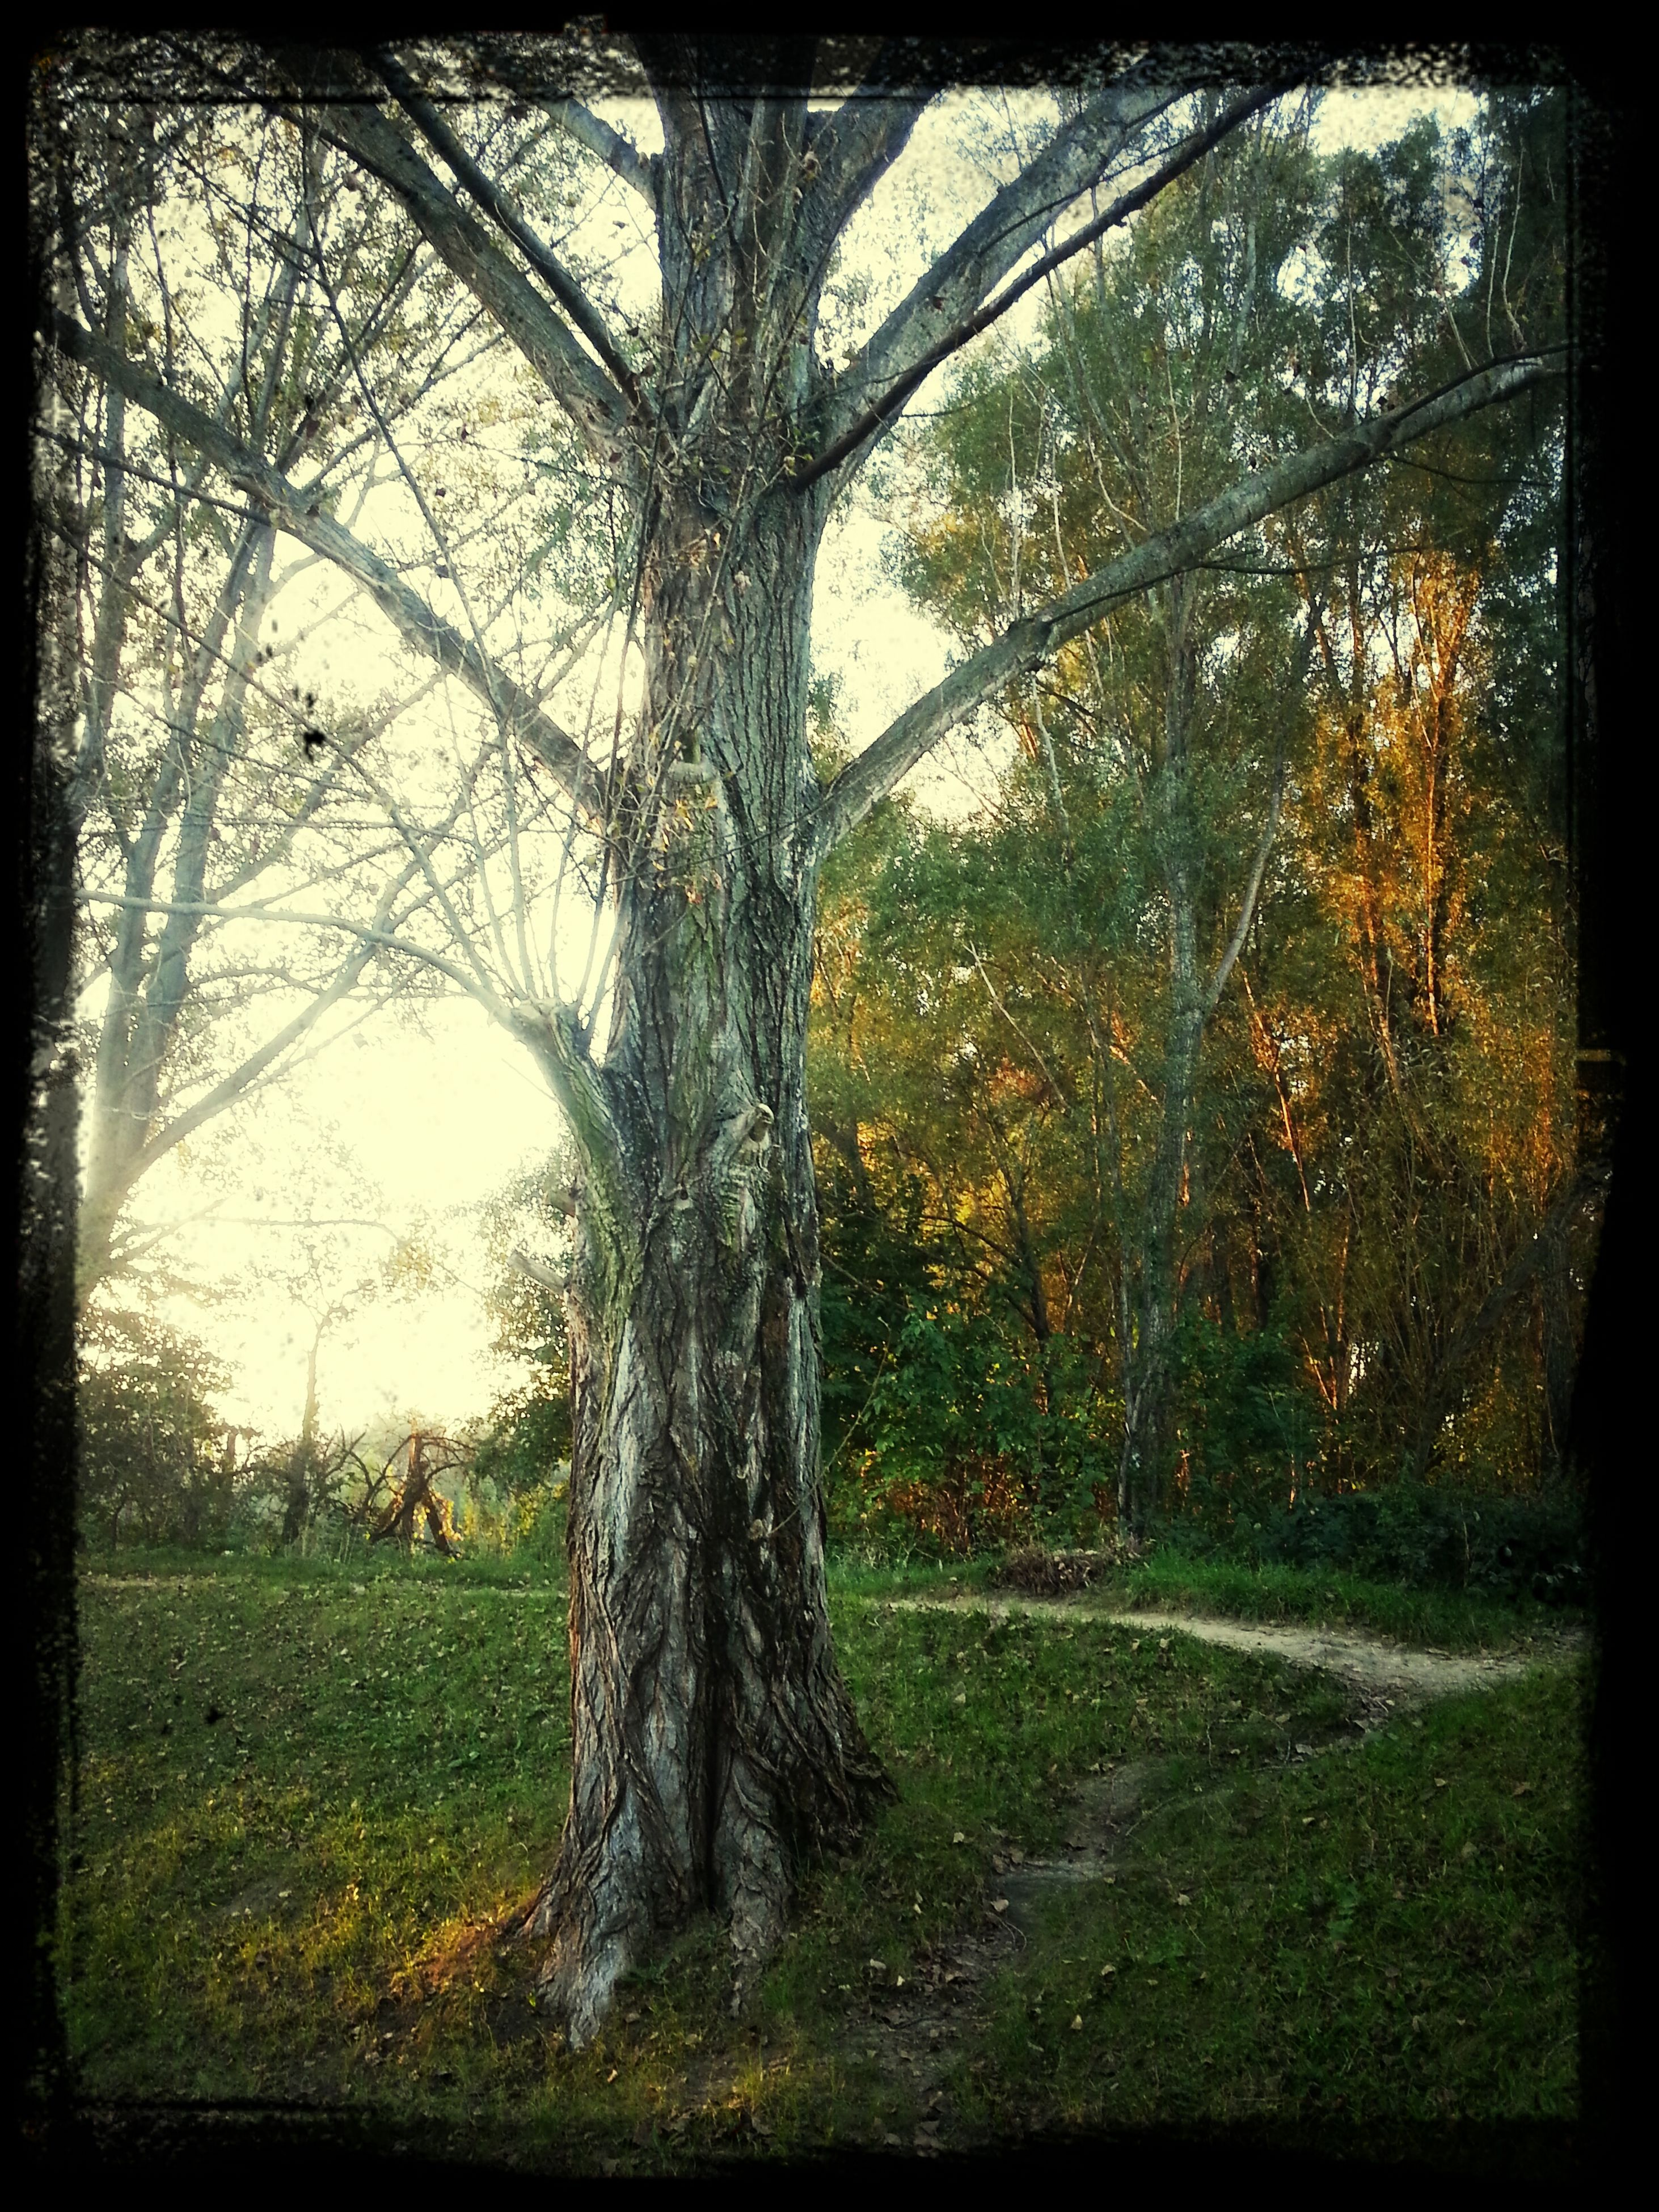 tree, transfer print, tree trunk, auto post production filter, growth, tranquility, grass, nature, branch, tranquil scene, field, beauty in nature, scenics, sunlight, green color, landscape, day, outdoors, no people, park - man made space